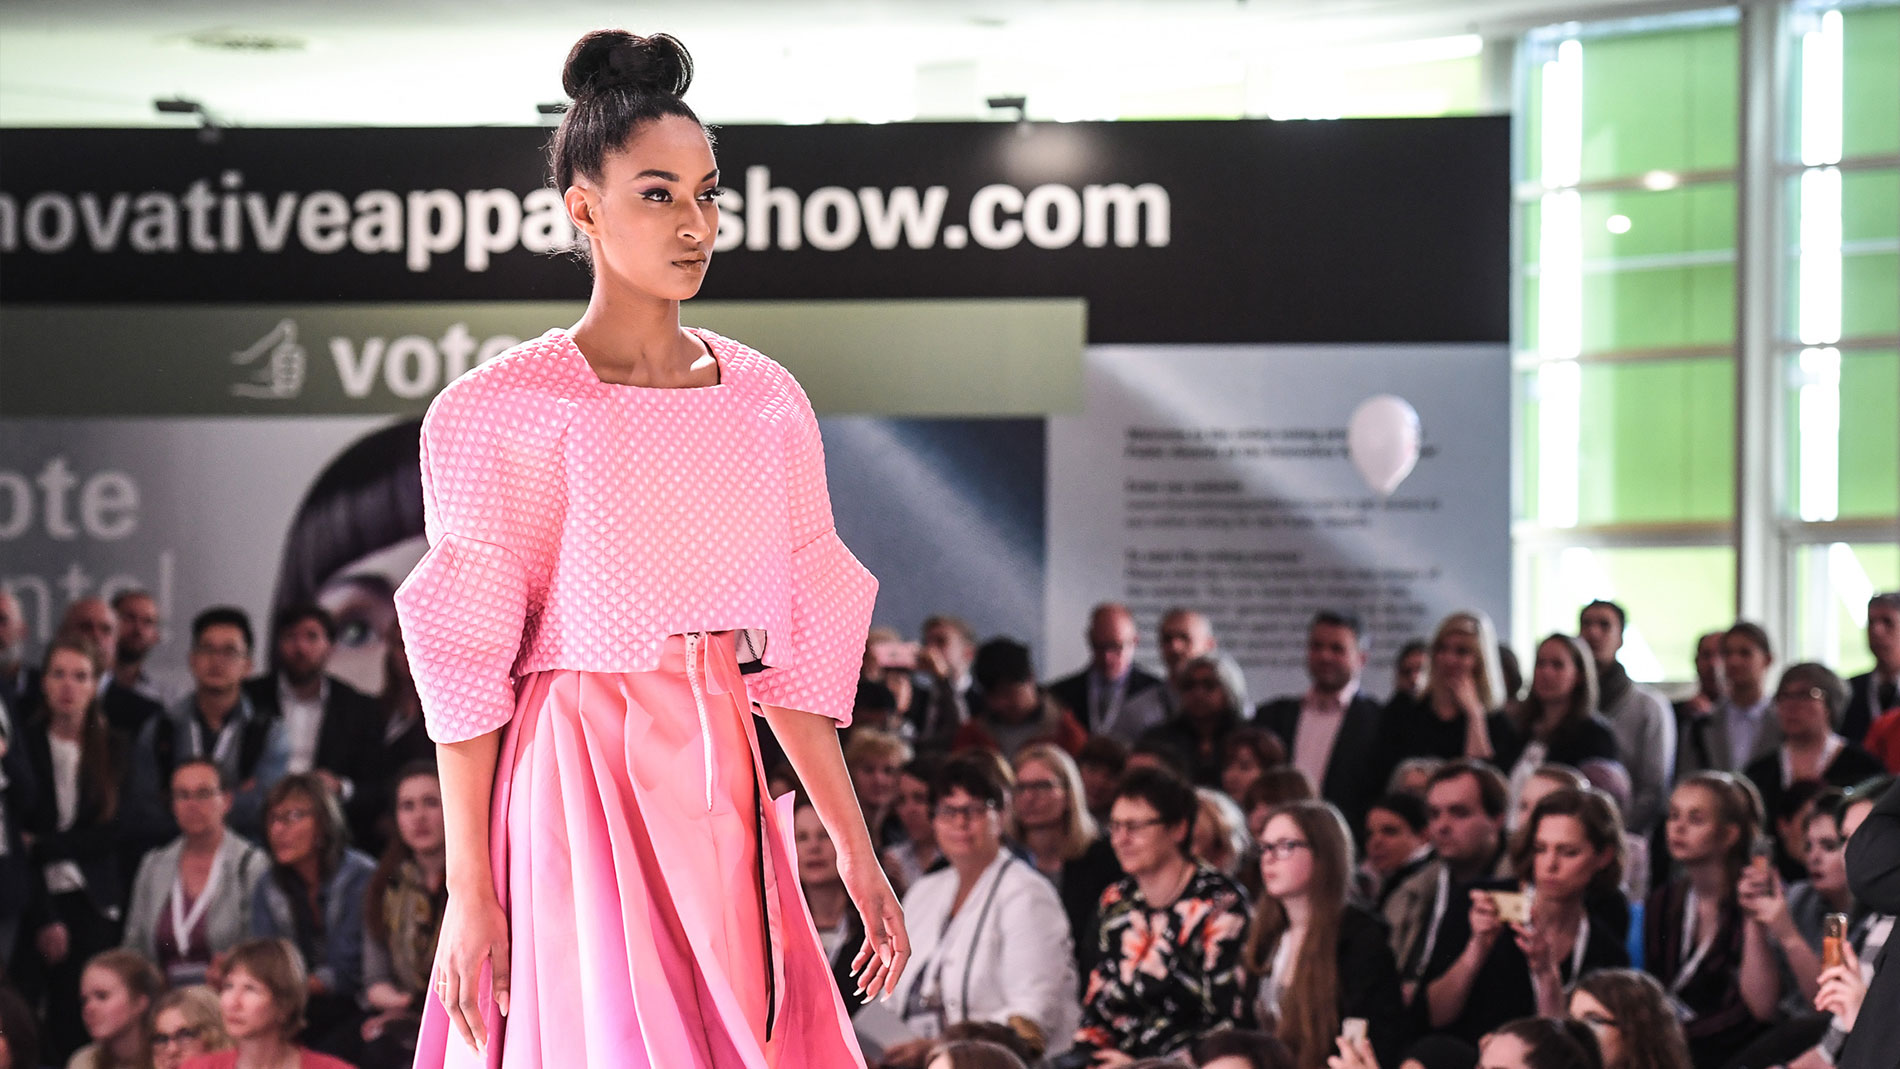 innovative-apparel-show-techtextil-4-1900x1069